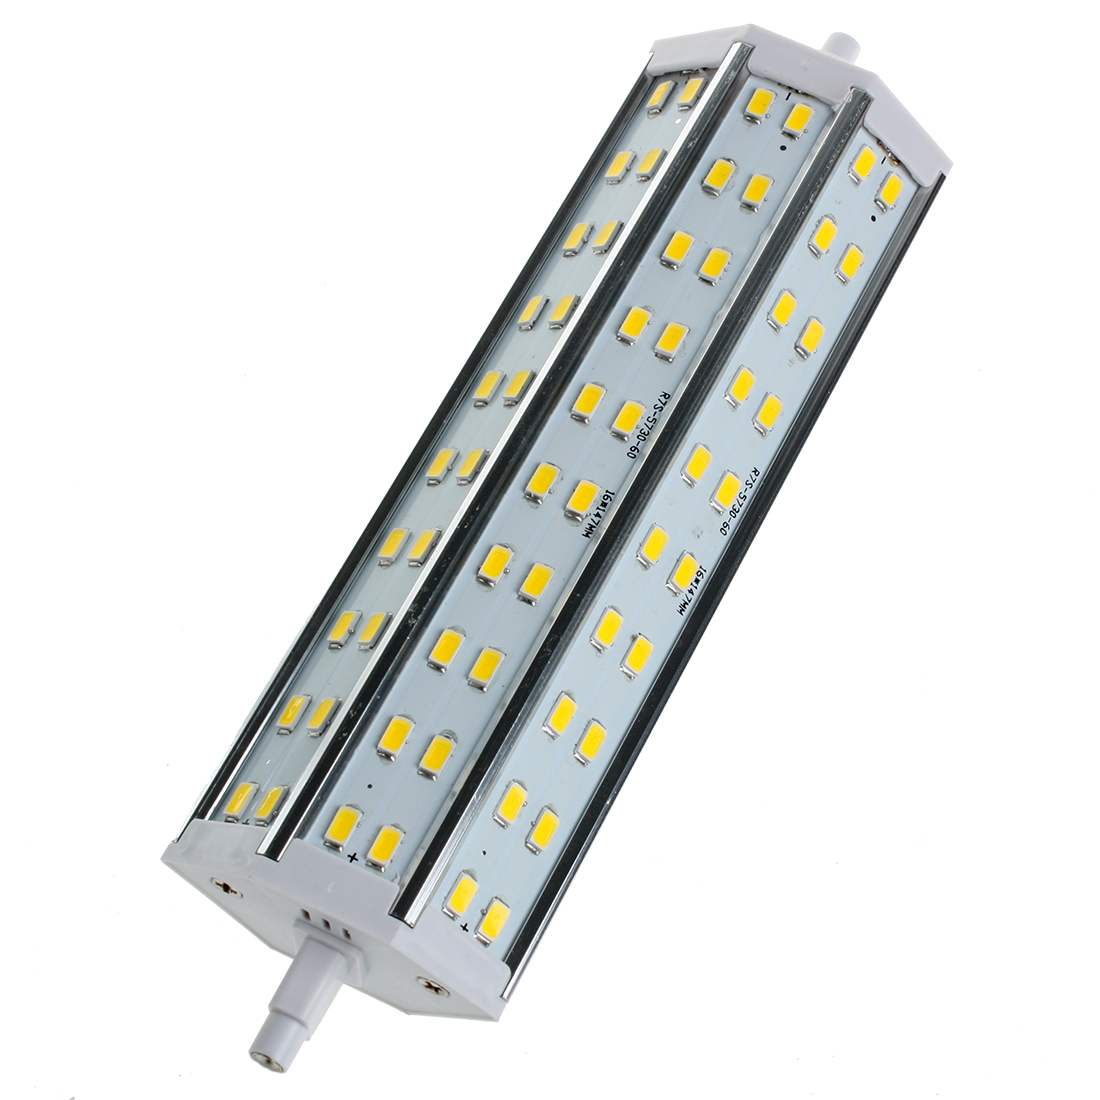 r7s led 5630 smd lampe dimmbar leuchtmittel fluter strahler stab 10w 15w 25w ebay. Black Bedroom Furniture Sets. Home Design Ideas